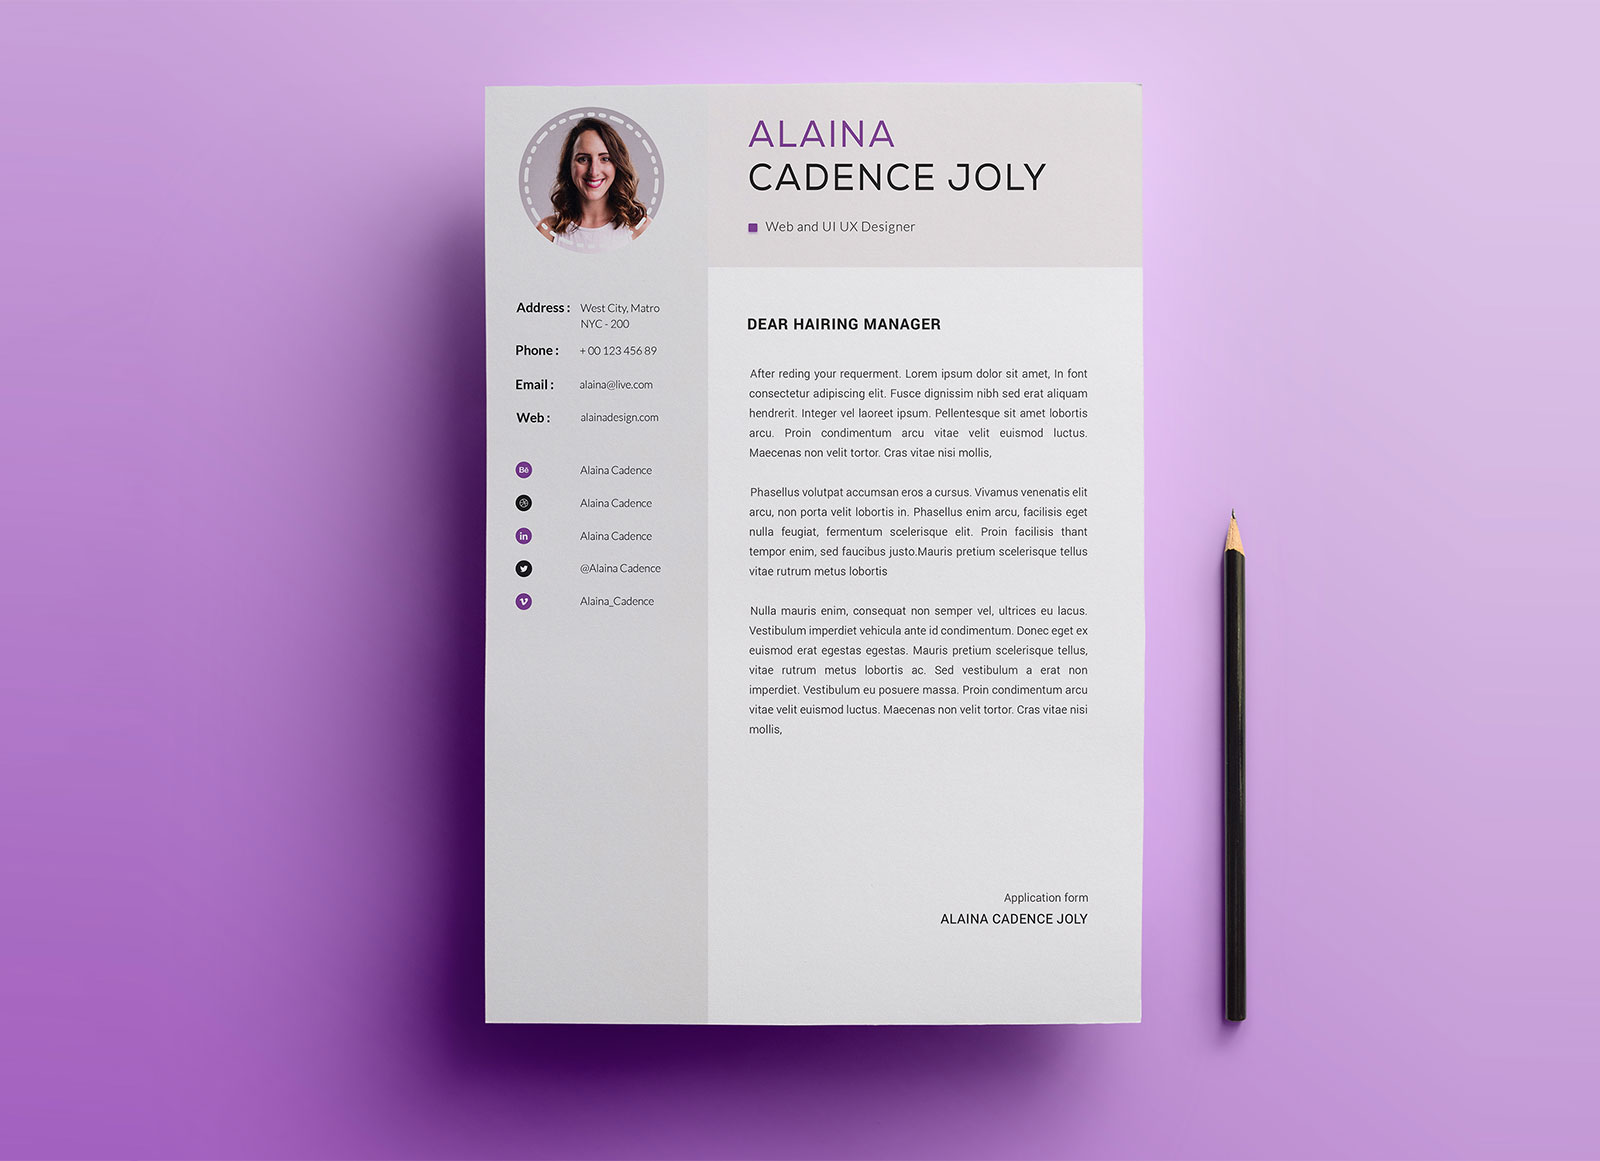 Free-Clean-&-Professional-Resume-With-Cover-Letter-PSD-2